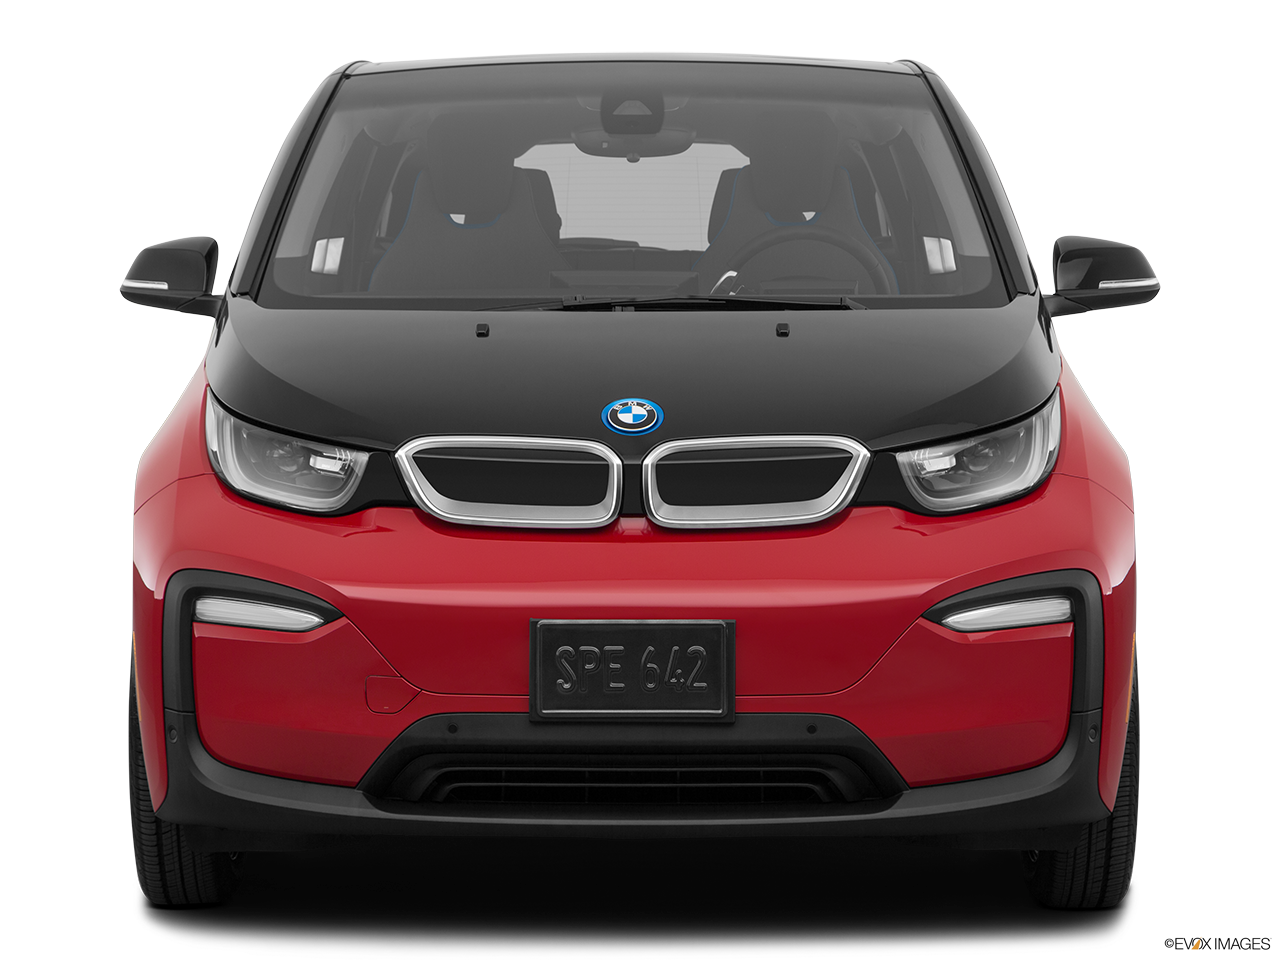 Front view of the BMW i3